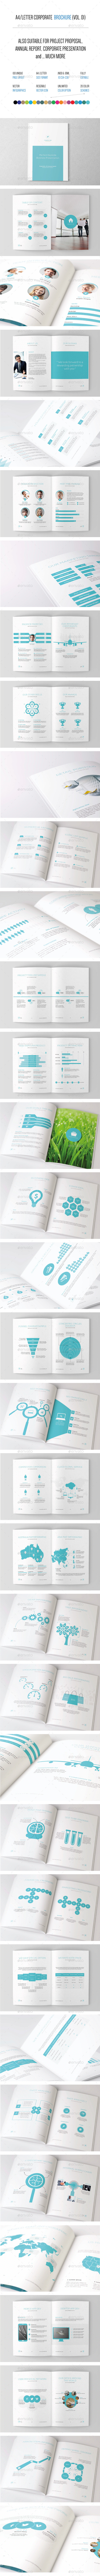 A4/Letter 100 Page Business Brochure (V.01) - Corporate Brochures